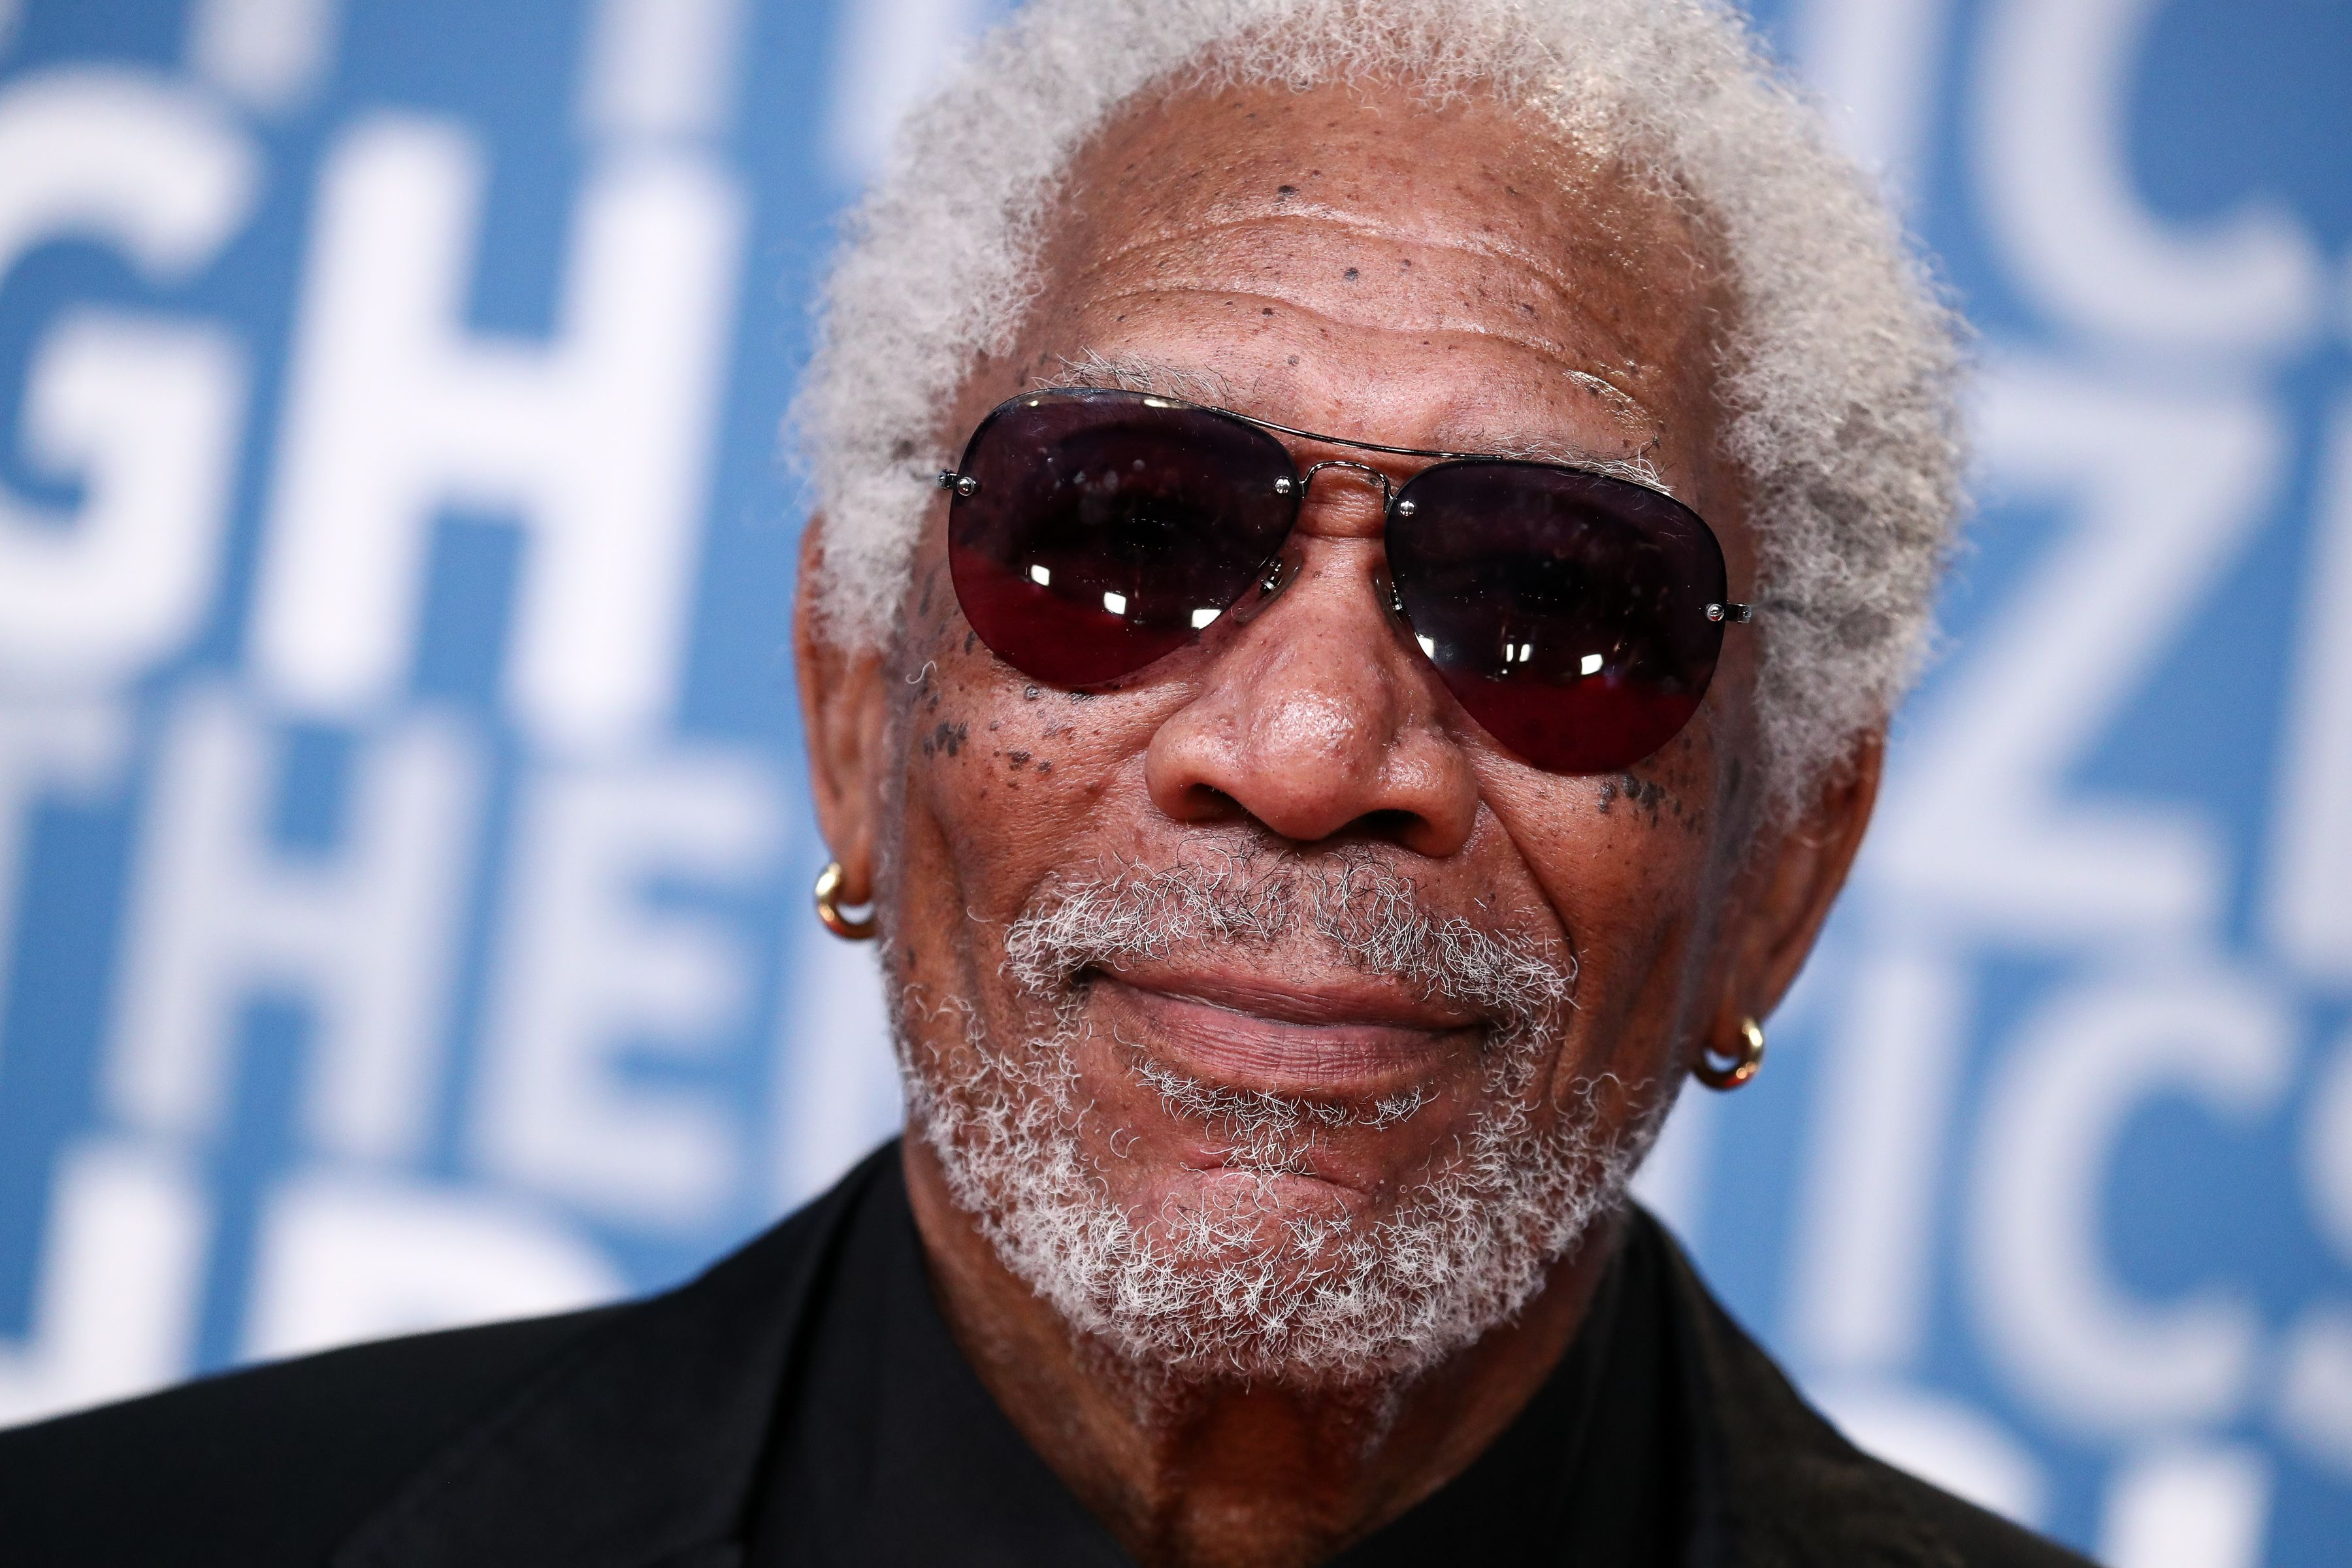 Morgan Freeman On Accusations I Apologize To Anyone Who Felt Uncomfortable Or Disrespected Deadline